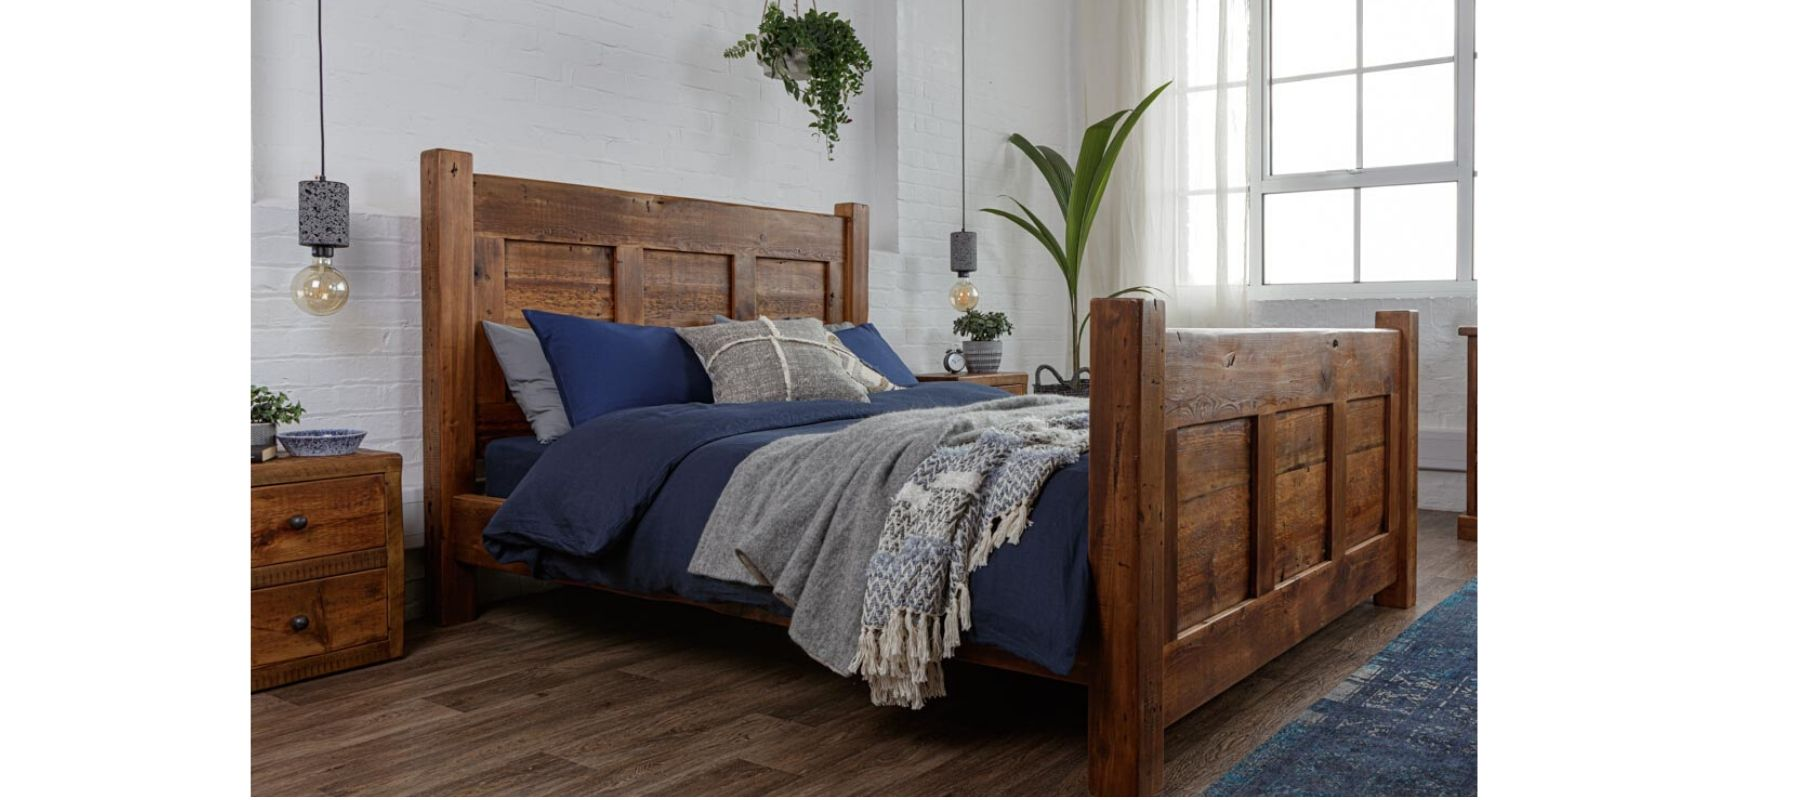 Reclaimed wood bed against white brick wall